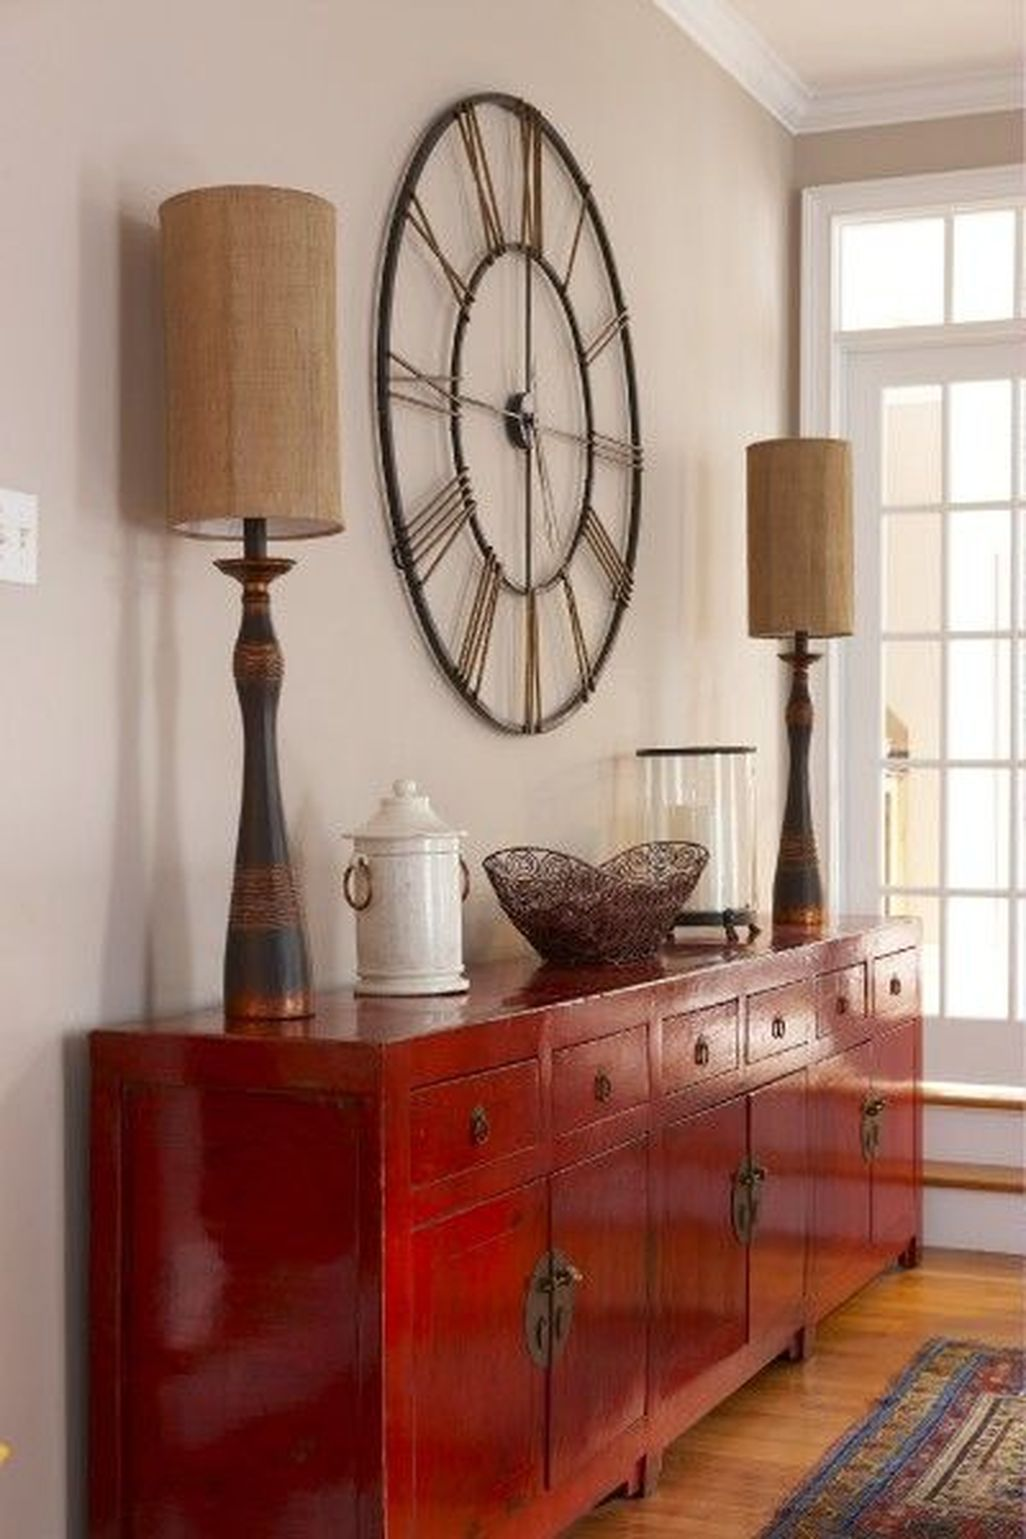 Amazing Living Room Cabinet Designs Antique Showcase Using: 41 Amazing Ancient Clock At Llivingroom